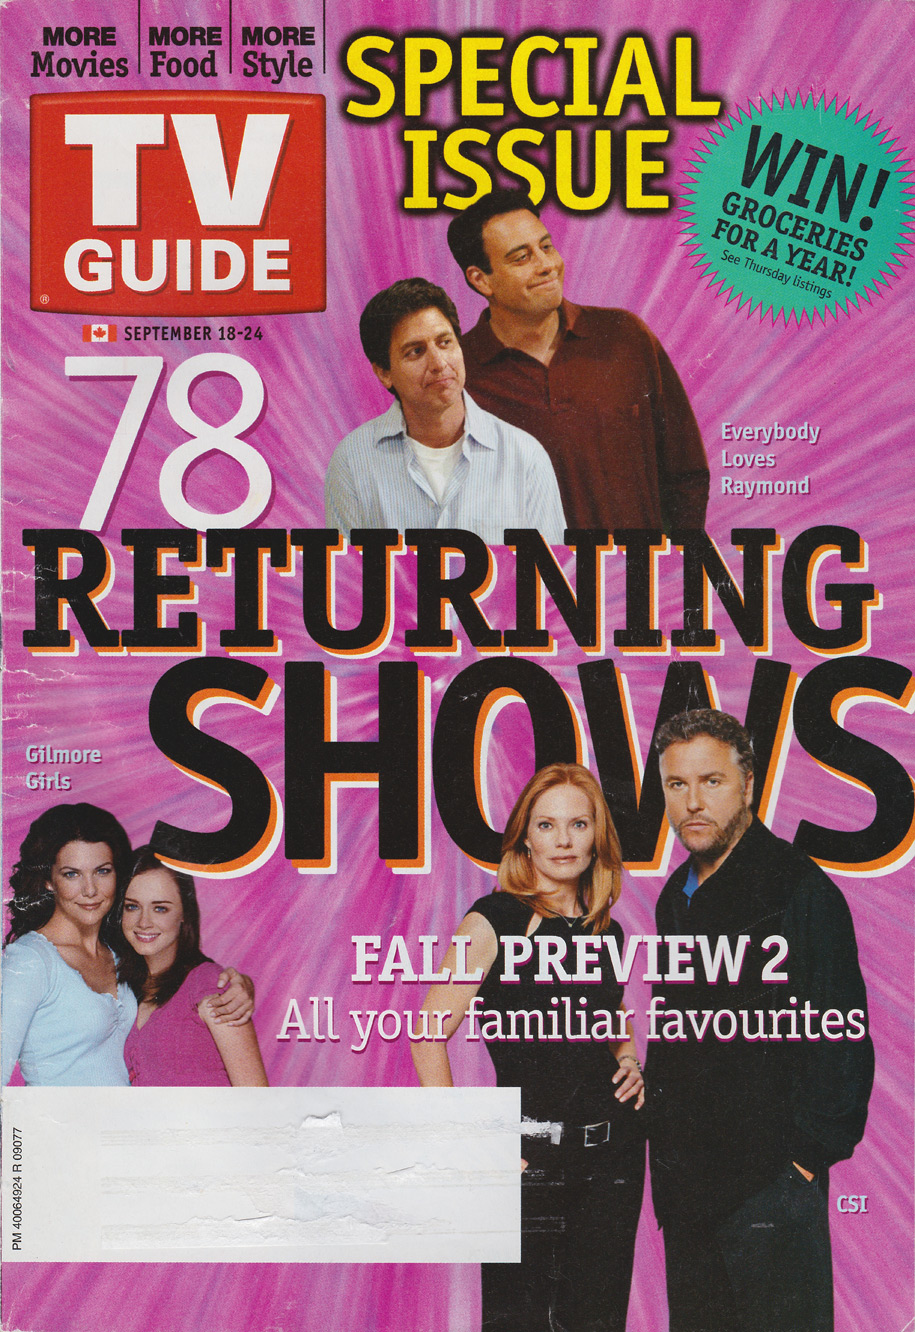 TV Guide September 18 2004 Manitoba Edition Front Cover